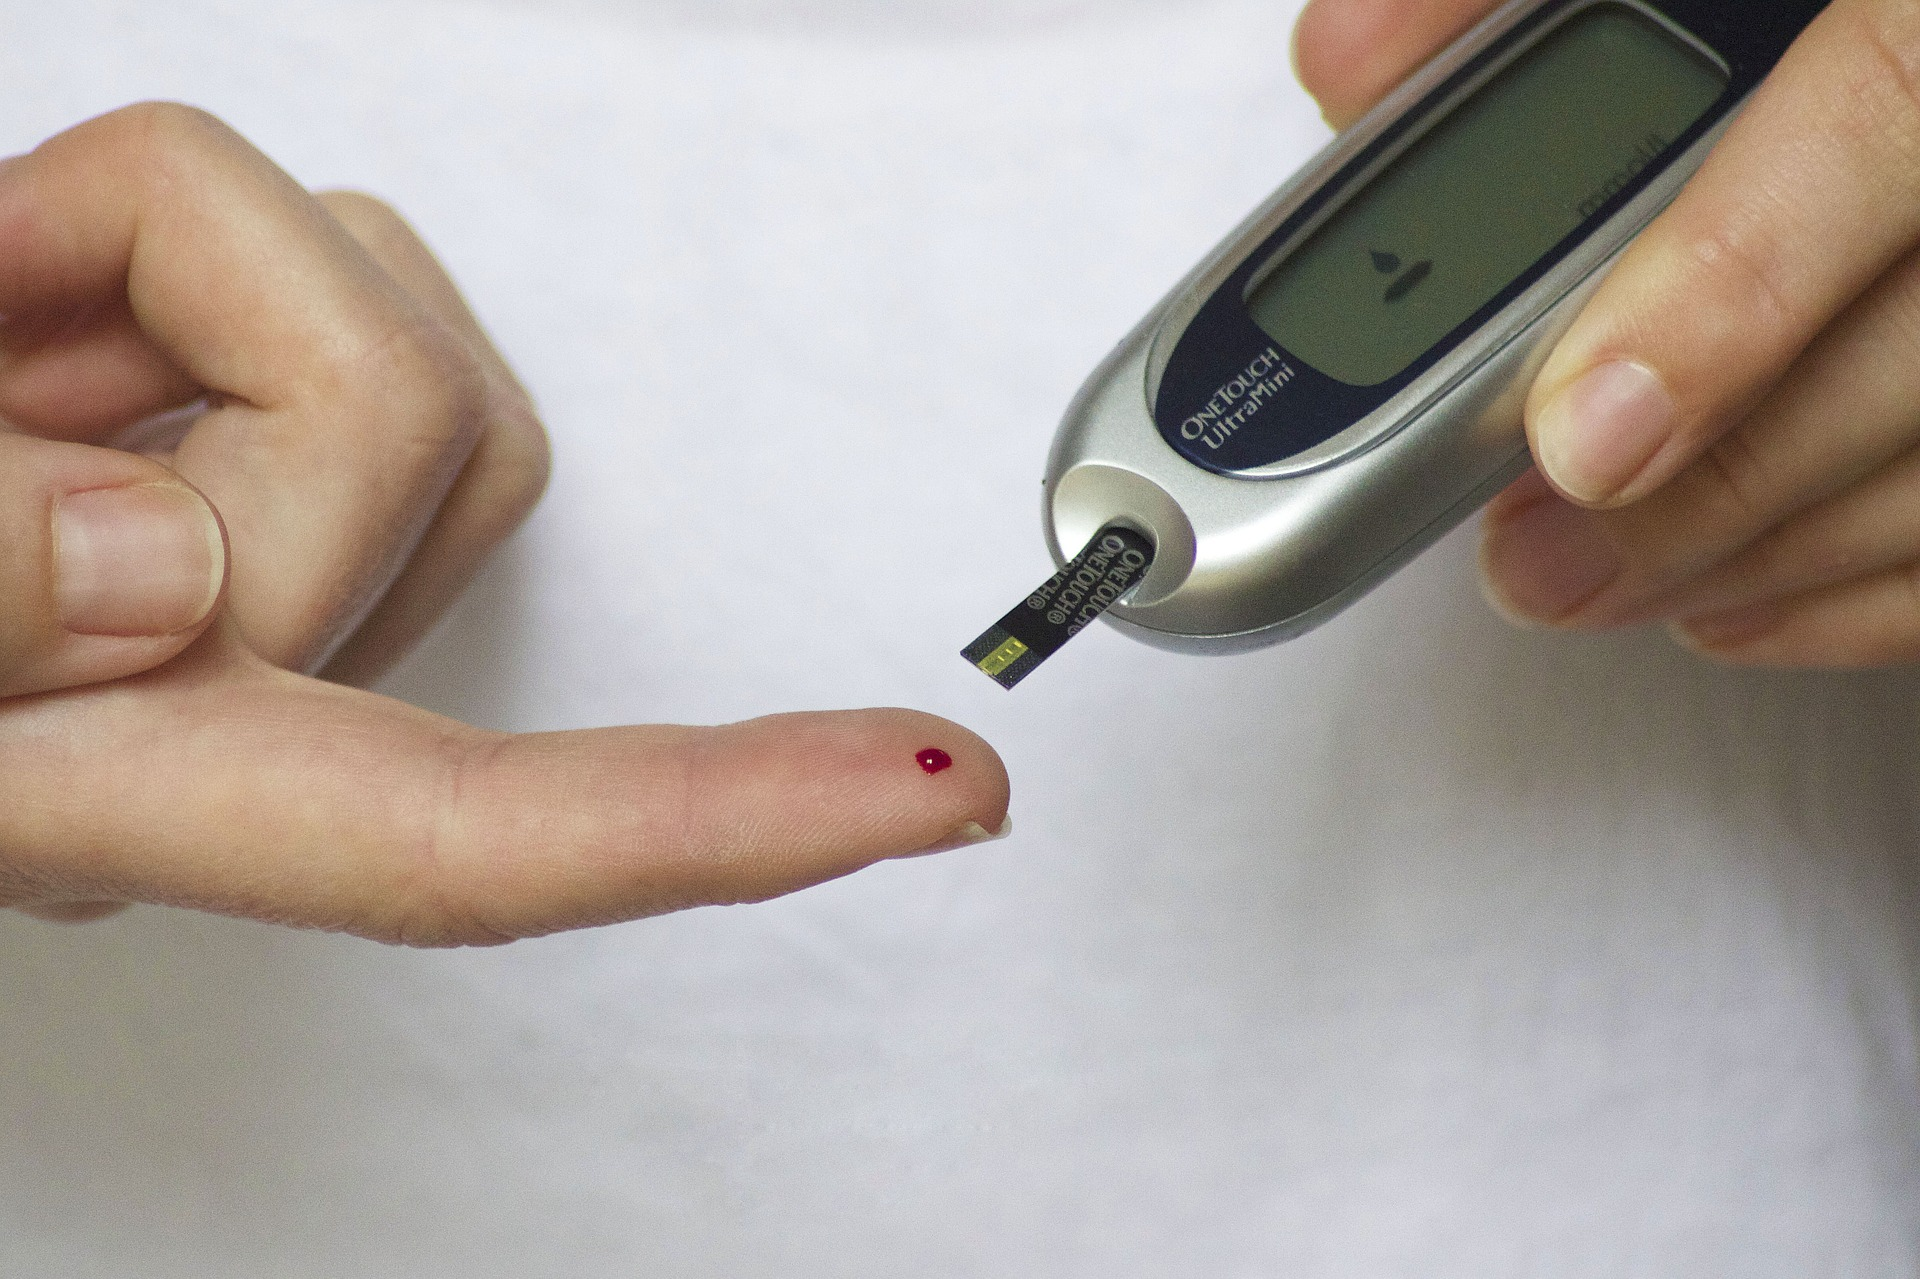 By 2030, 98 Million Indians Will Have Diabetes : 5 Diet Tips To Manage Diabetes  The findings published in The Lancet, revealed that China (130 million), followed by India  (98 million) and the US (32 million) will constitute over half of type-2 diabetics by 2030.